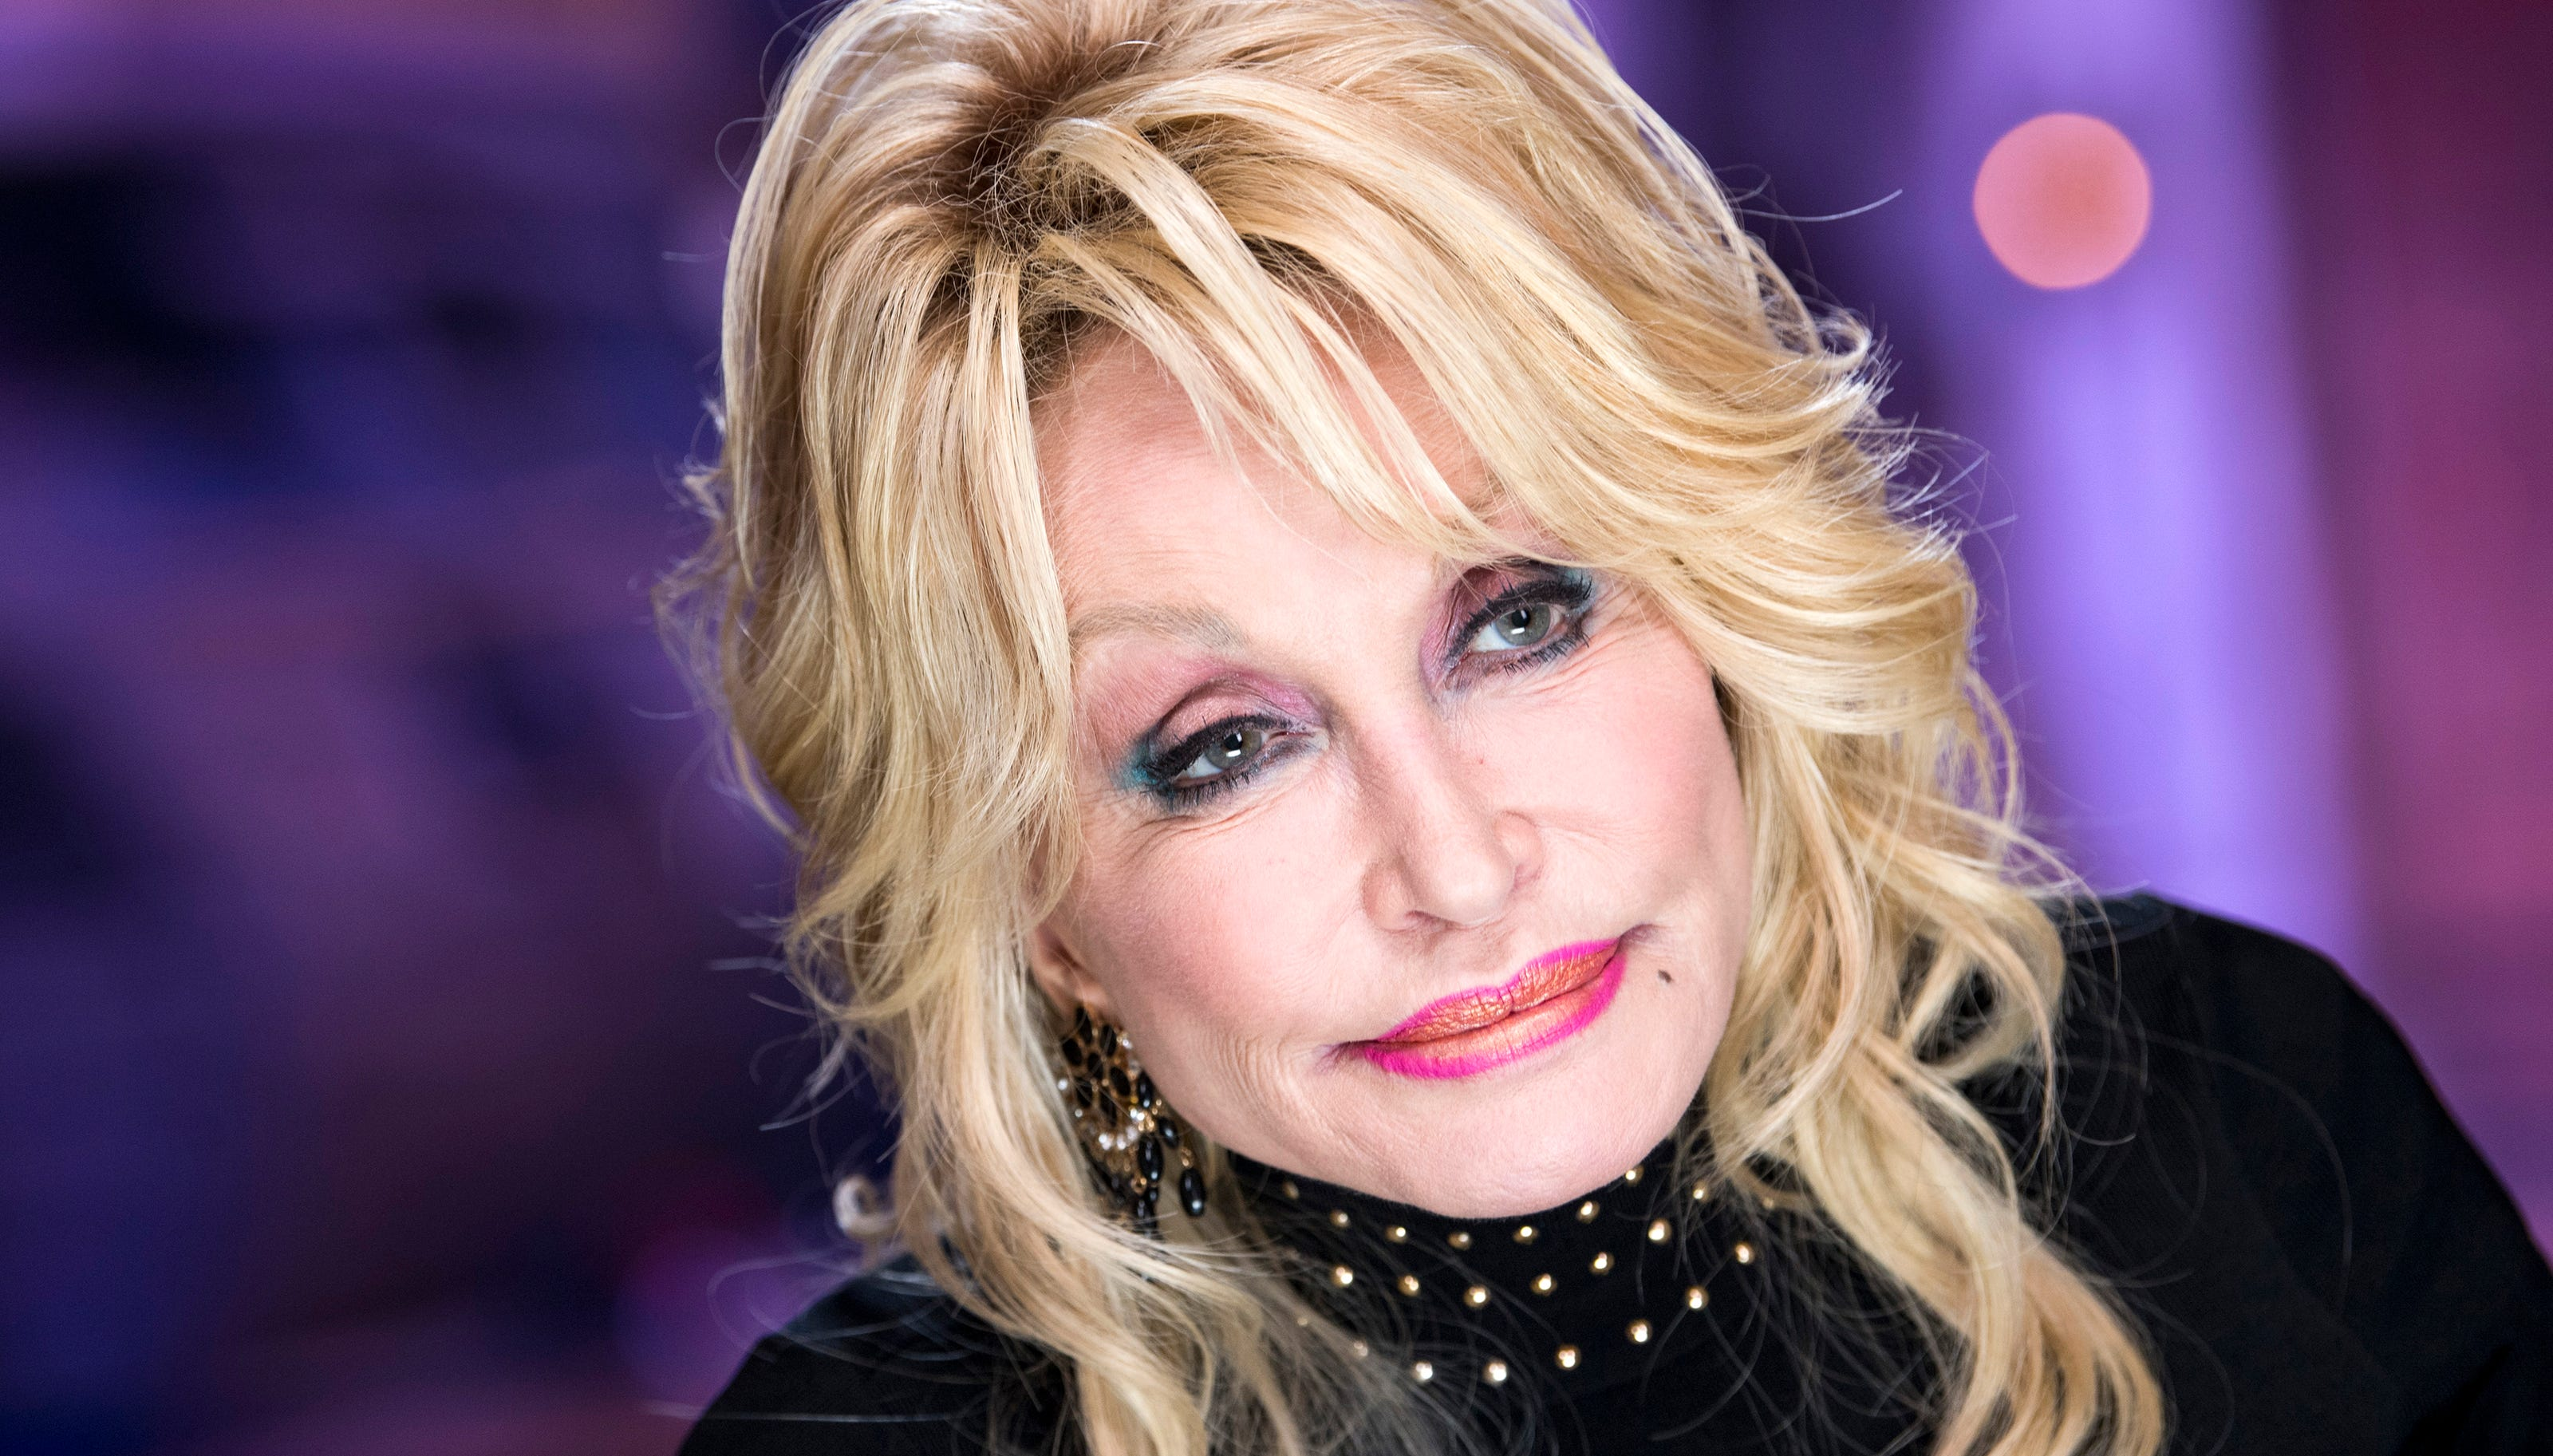 Quentin Tarantino Dolly Parton Are East Tennessee S Most Wikipedia Ed